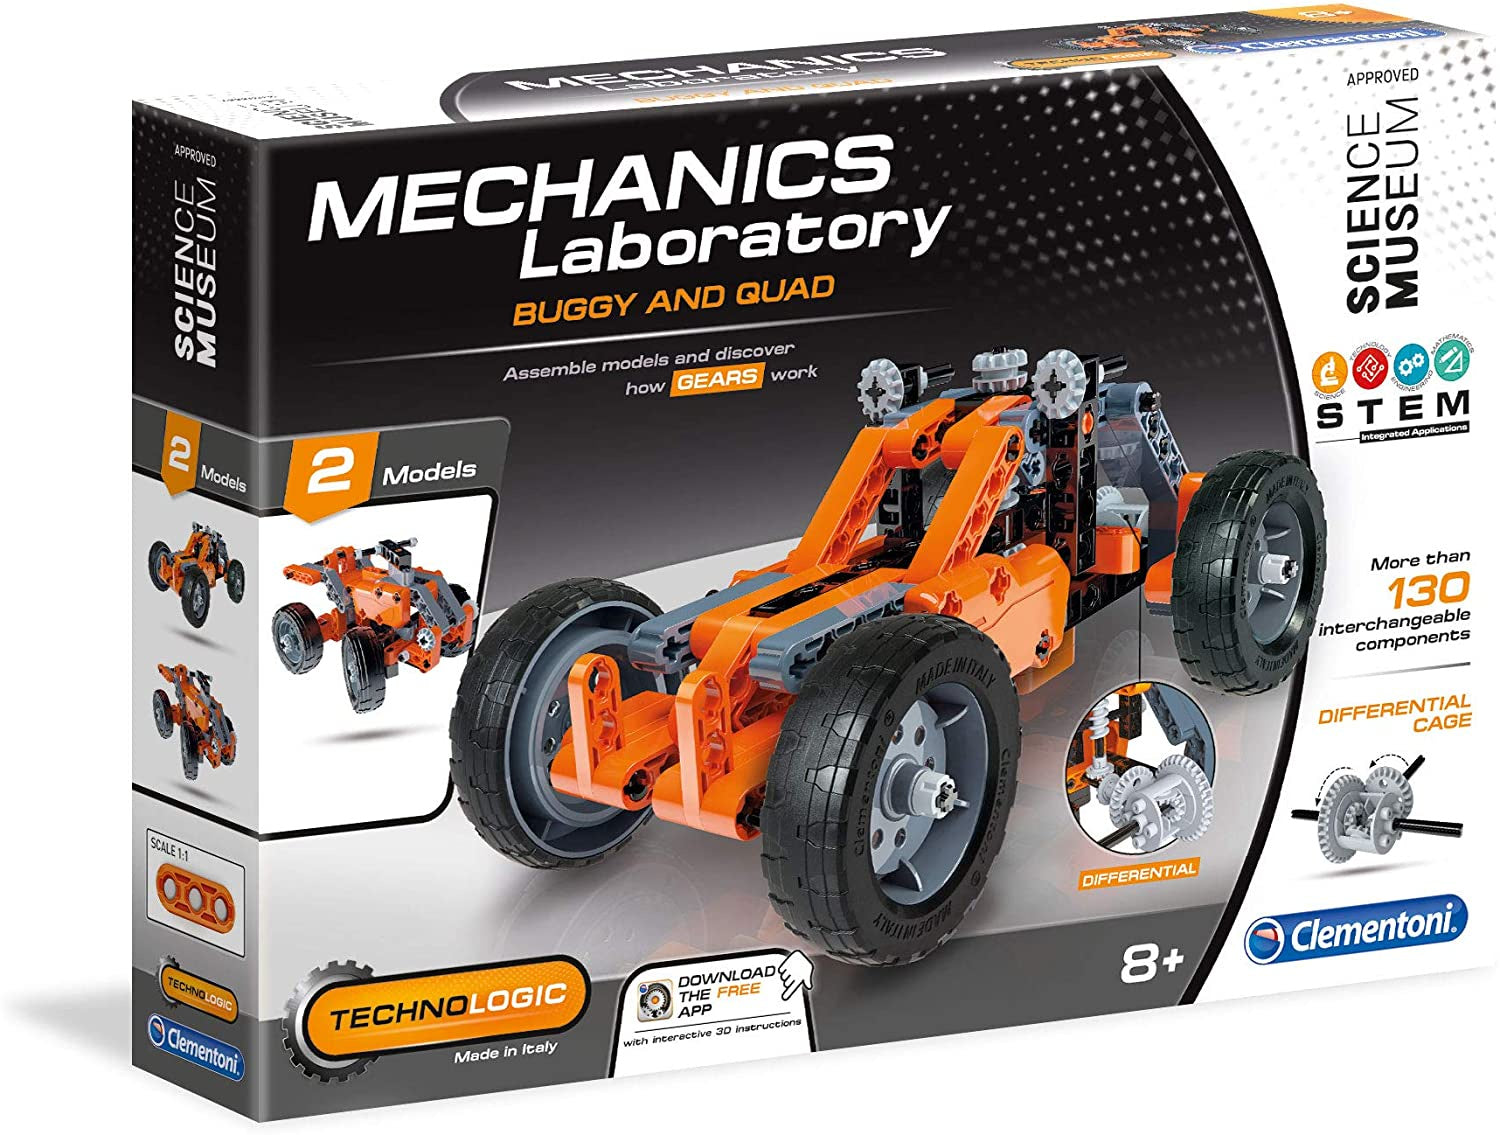 Mechinics Laboratory Buggy And Quad Construction Playset